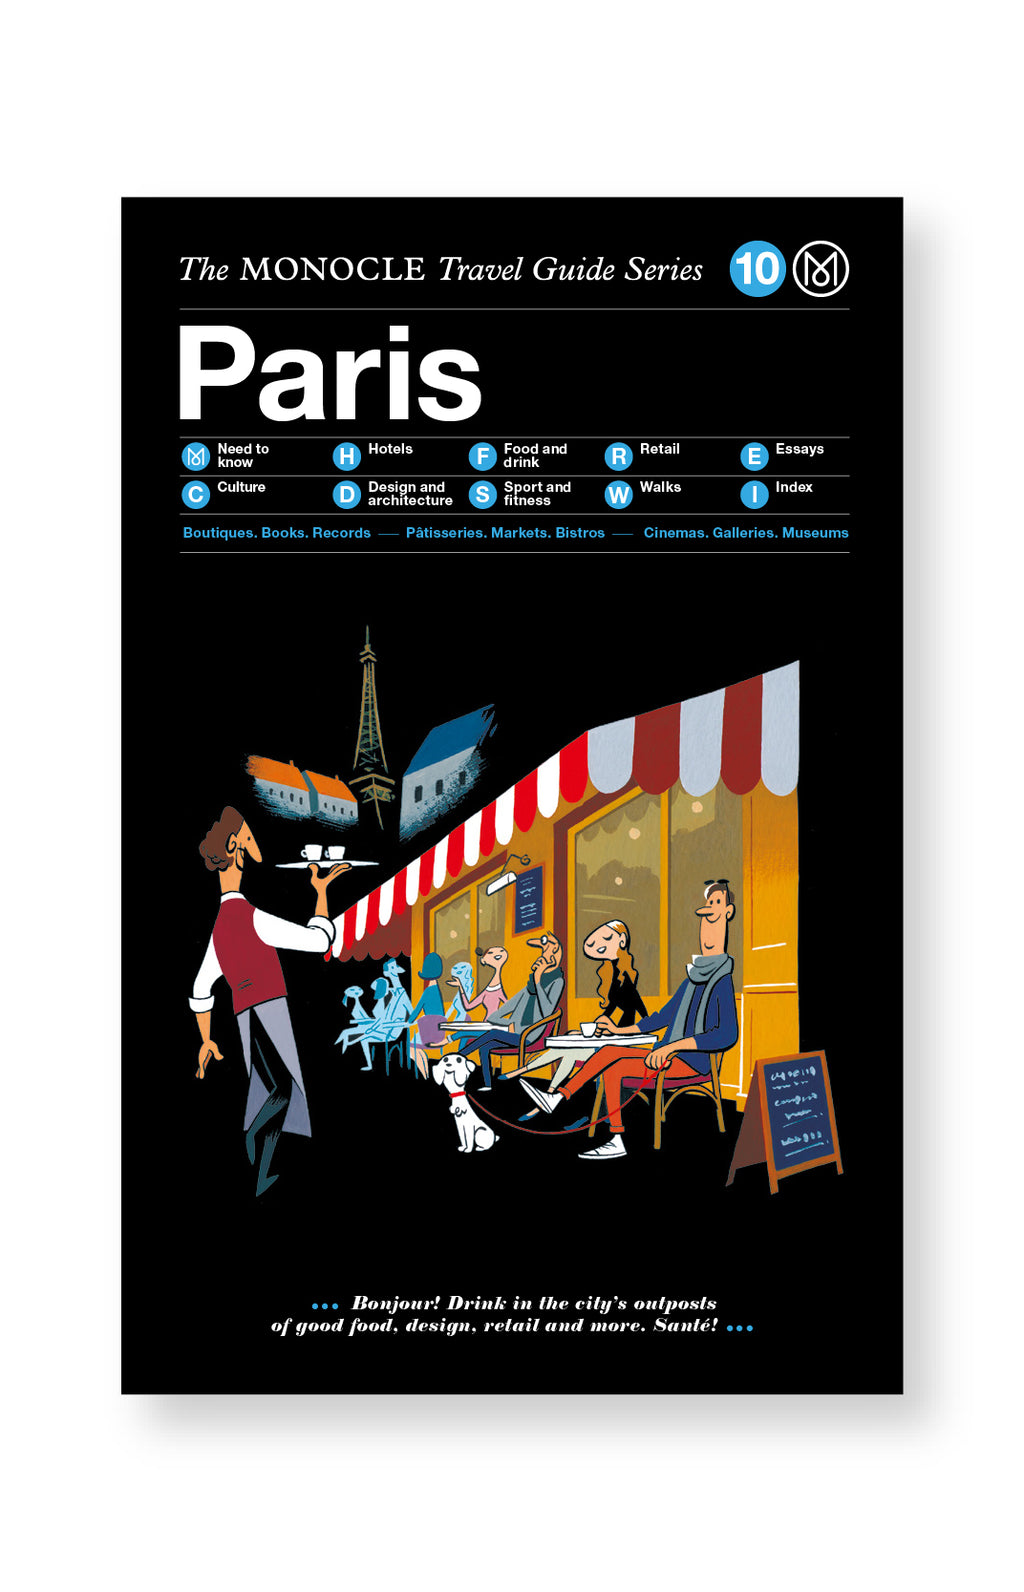 Paris - The Monocle Travel Guide Series 10